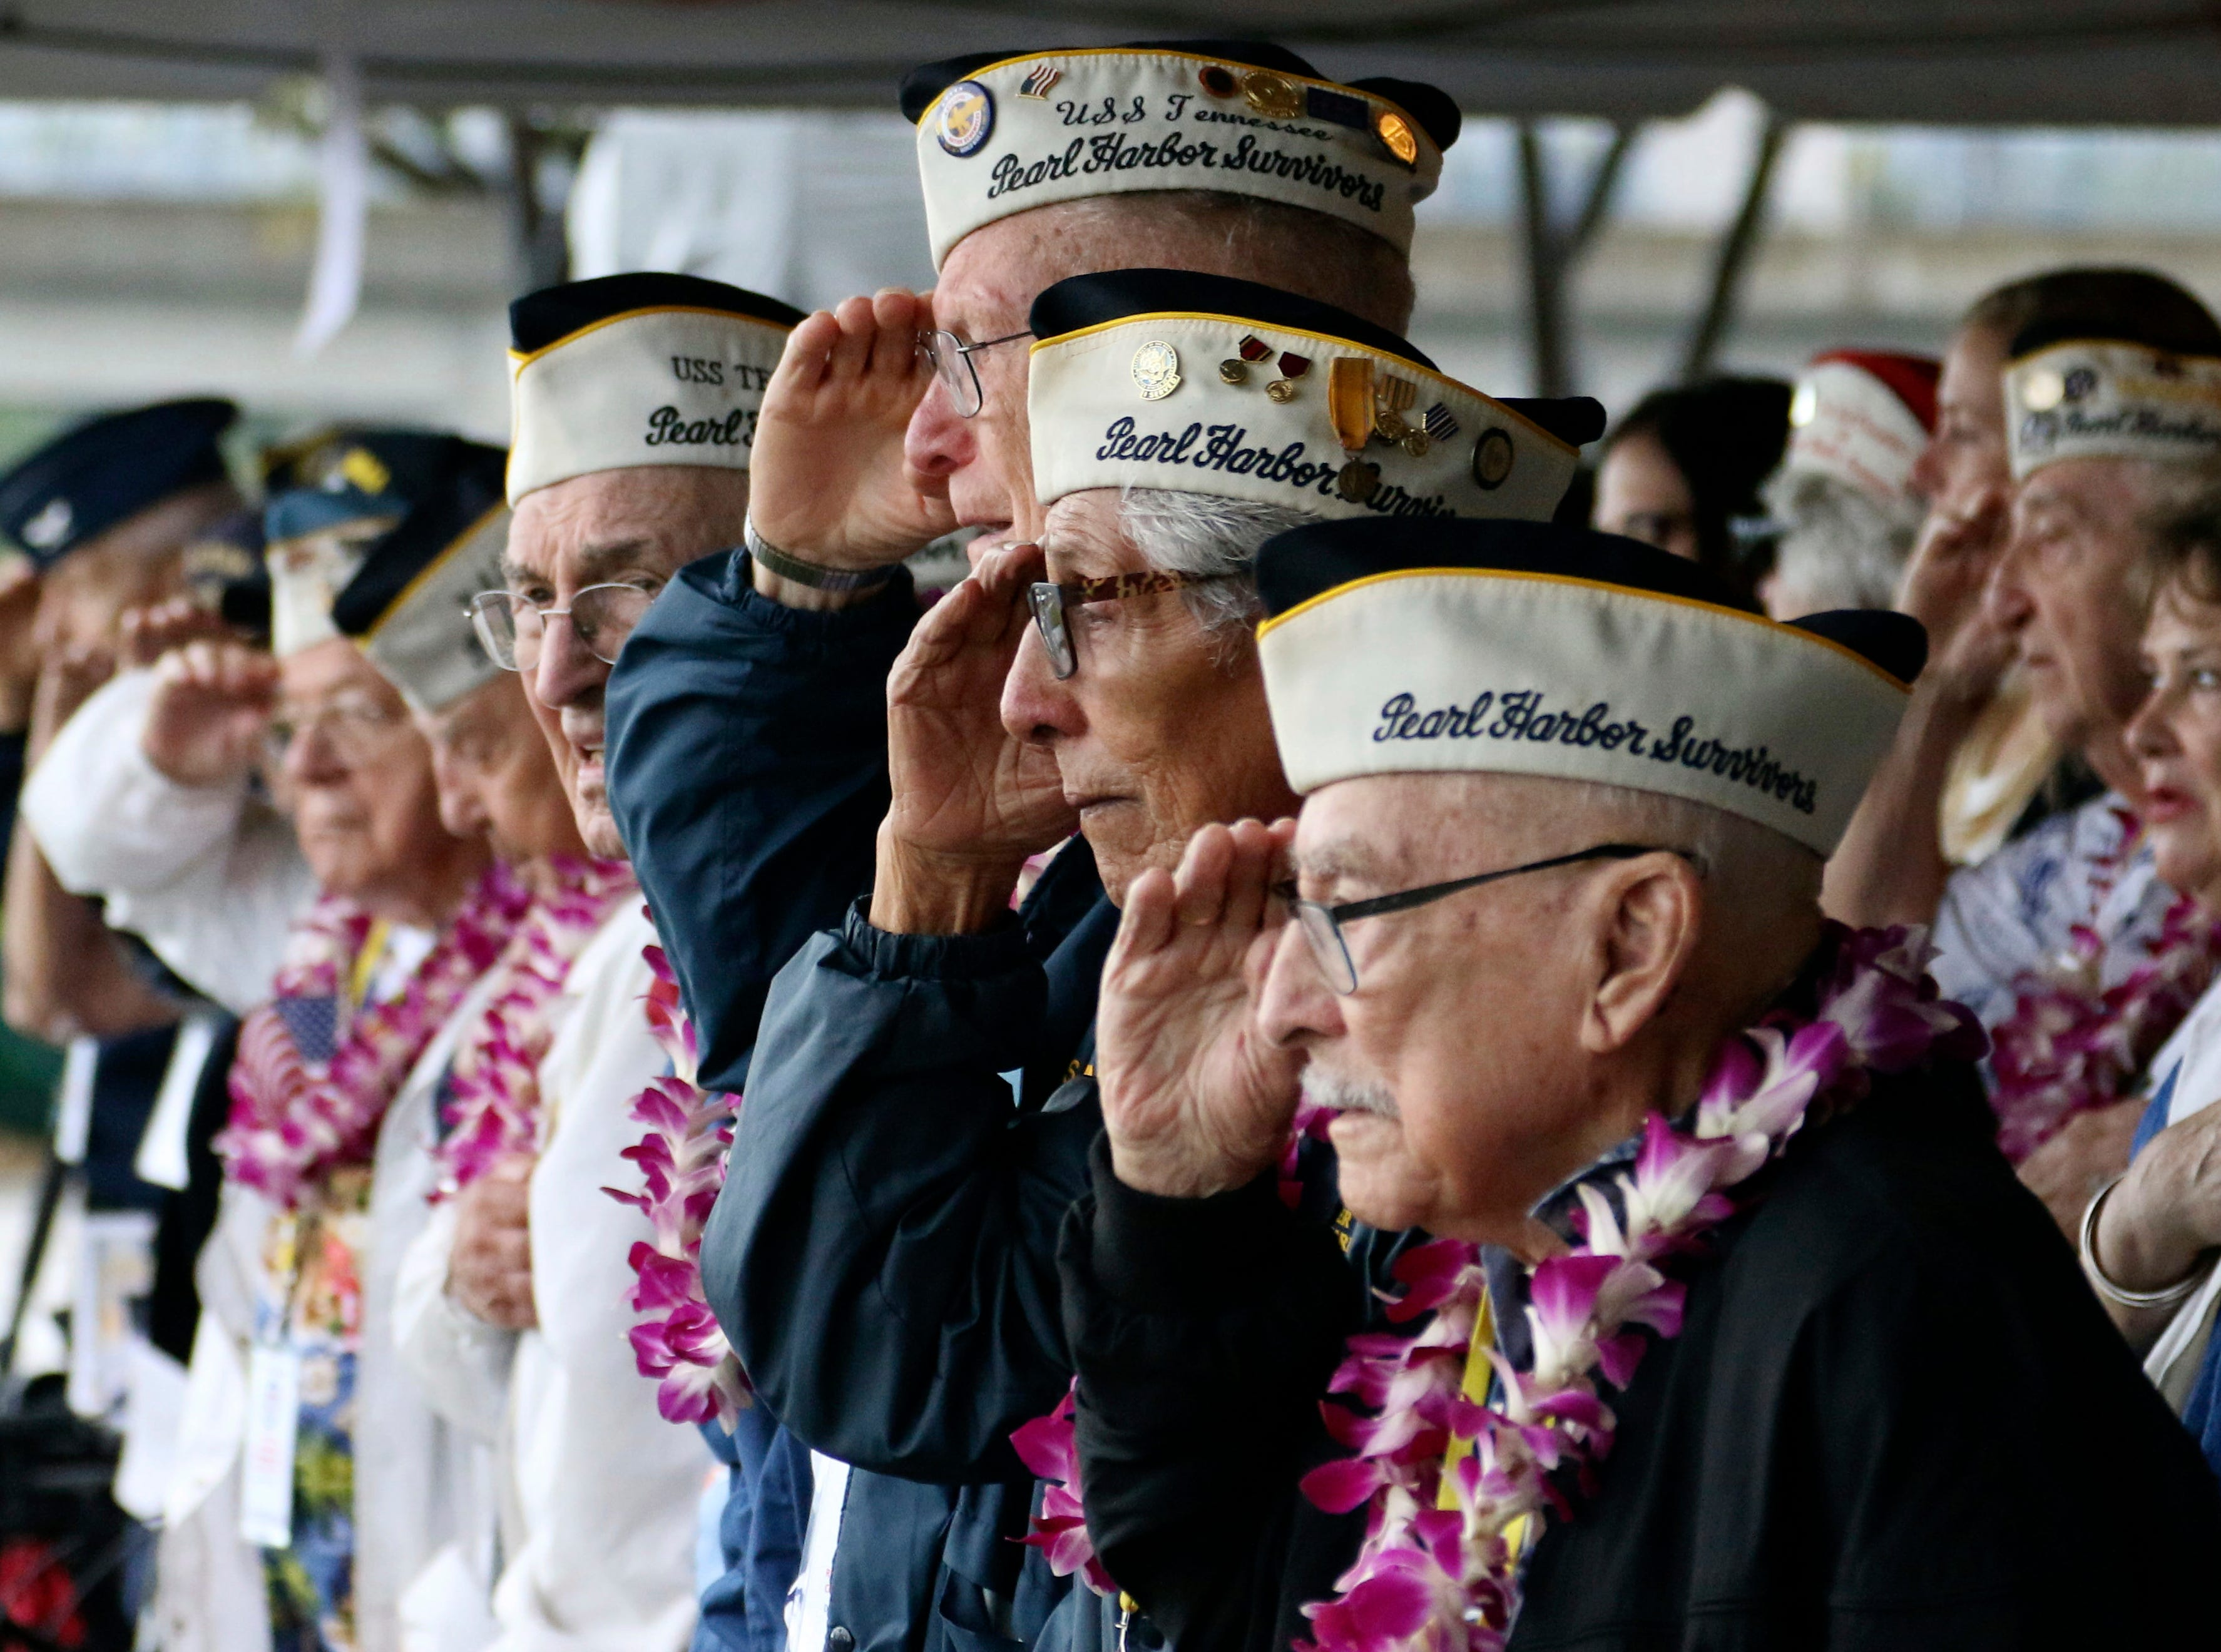 Pearl Harbor survivors salute during the National Anthem at a ceremony in Pearl Harbor, Hawaii on Friday, Dec. 7, 2018 marking the 77th anniversary of the Japanese attack. The Navy and National Park Service jointly hosted the remembrance ceremony at a grassy site overlooking the water and the USS Arizona Memorial.